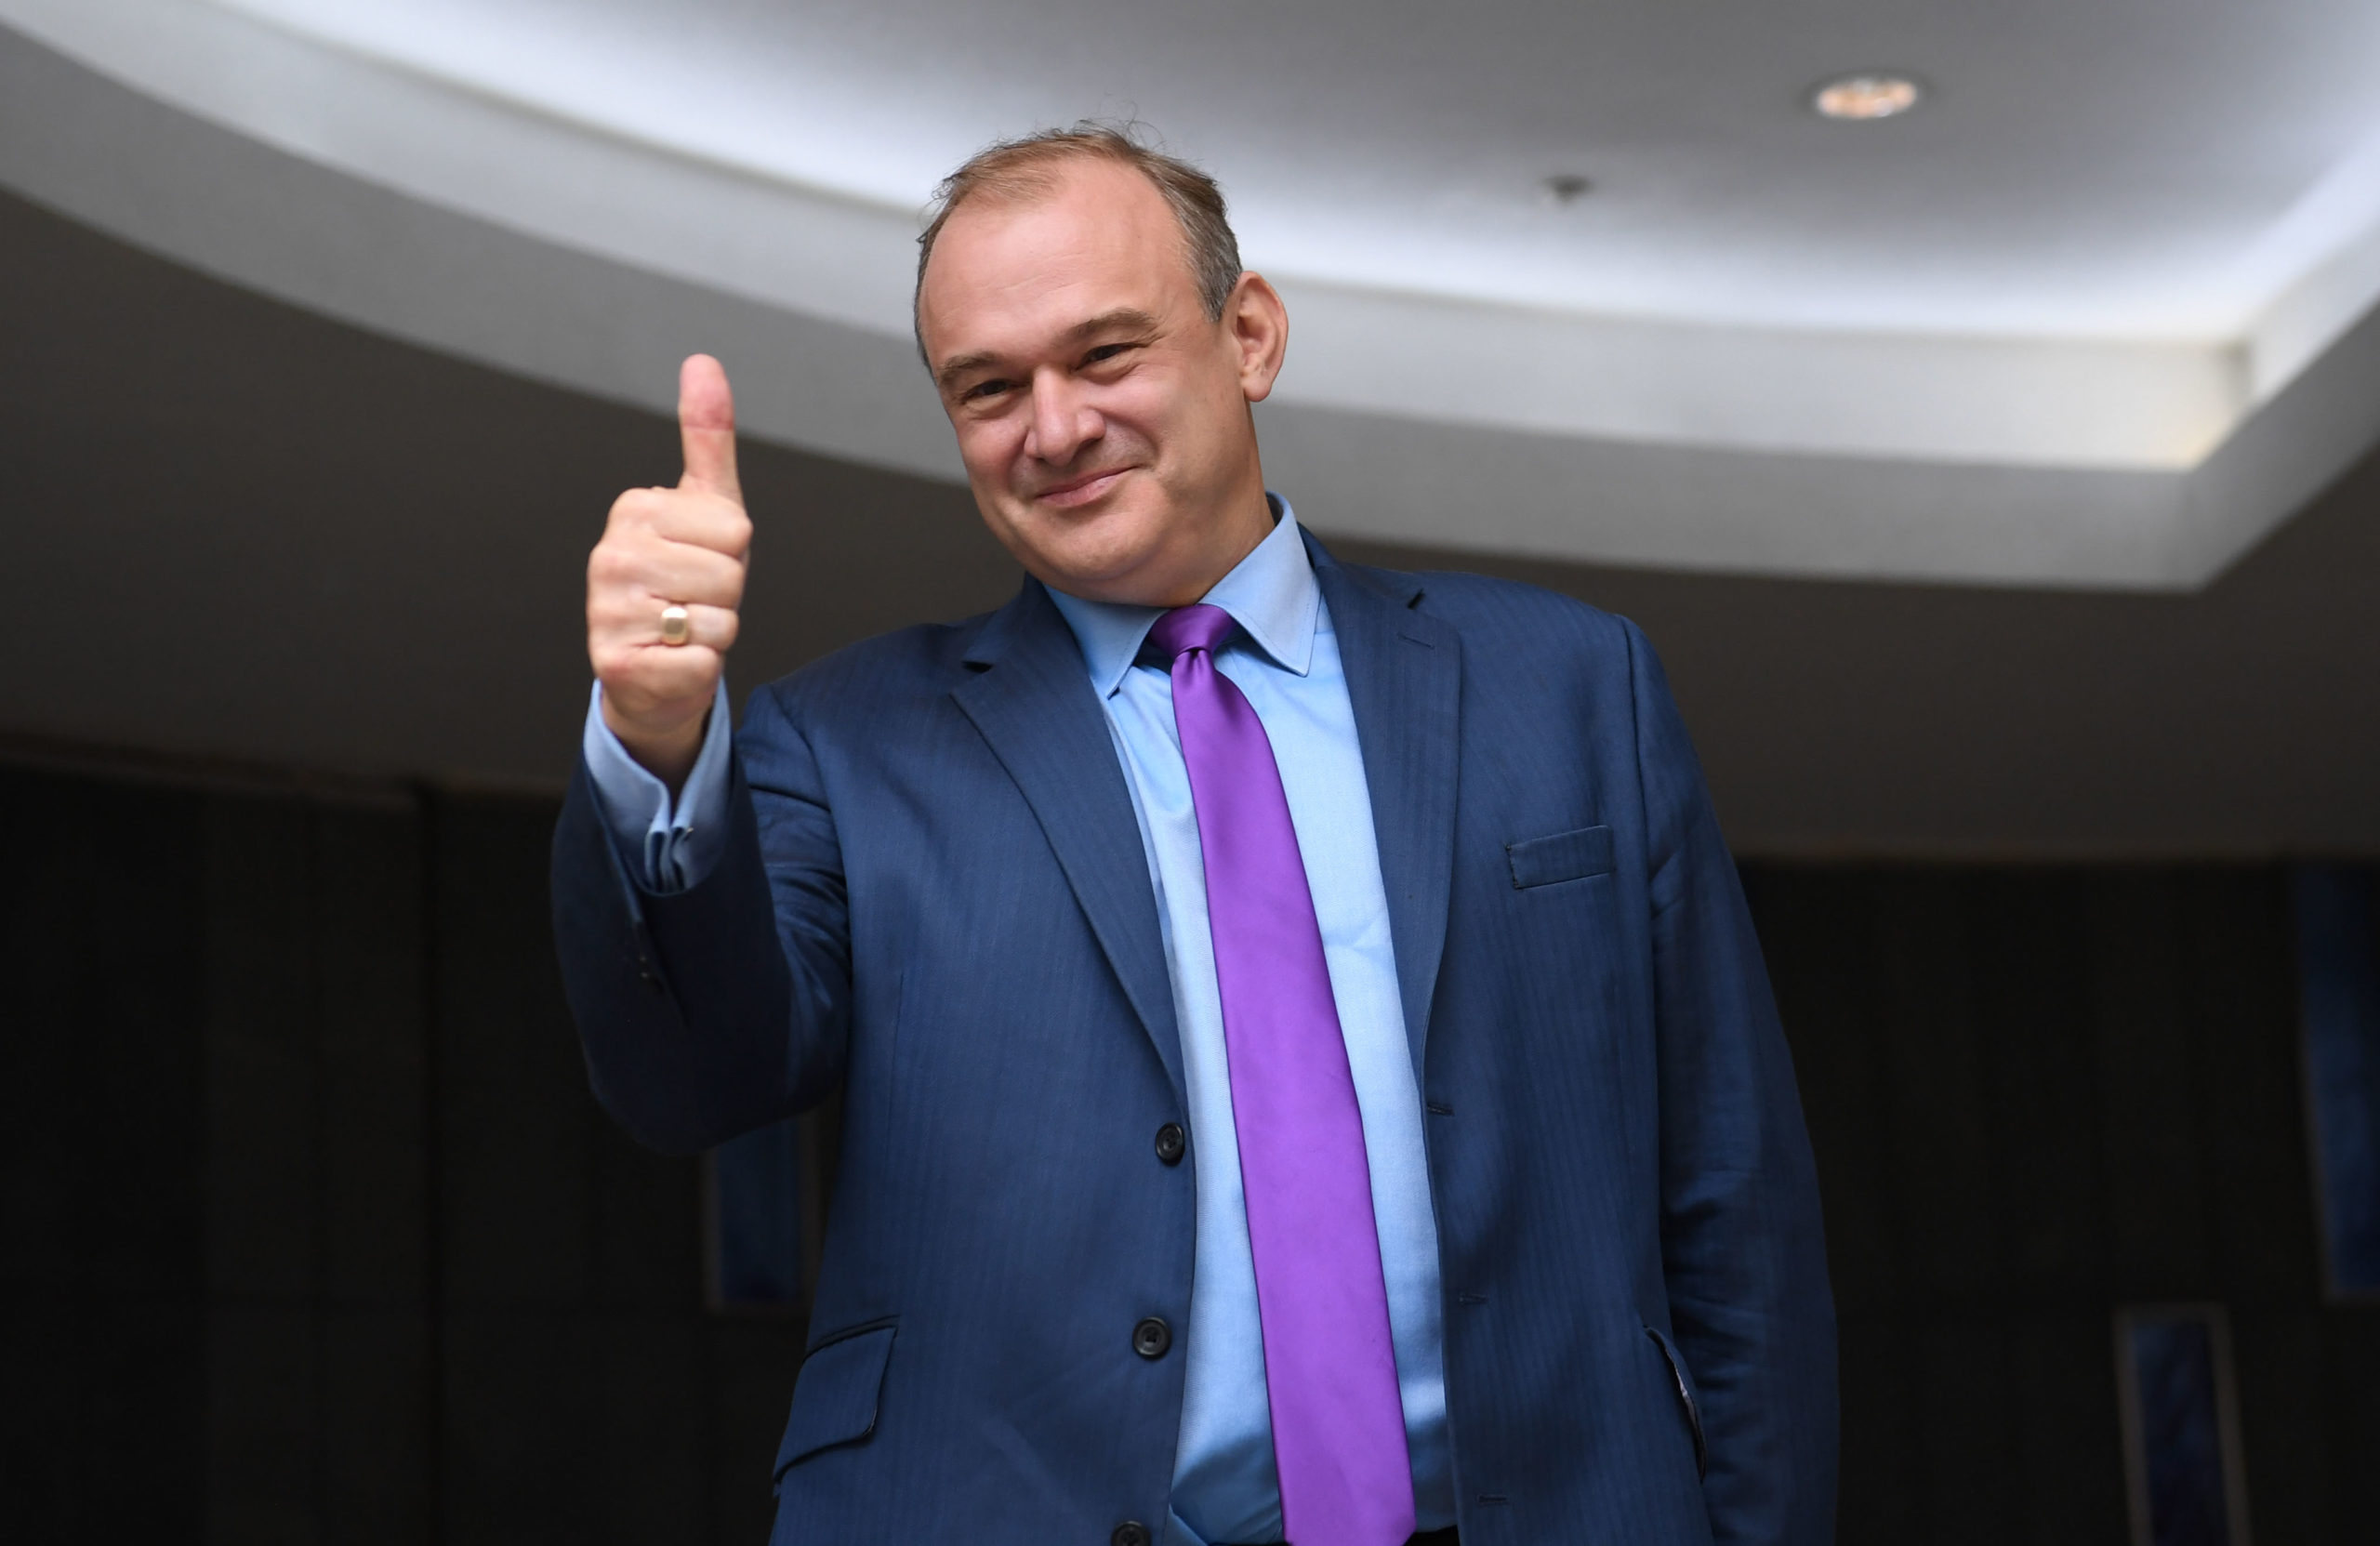 Ed Davey reacts after being elected as the leader of the Liberal Democrats on August 27, 2020. (Stefan Rousseau - Pool/Getty Images)